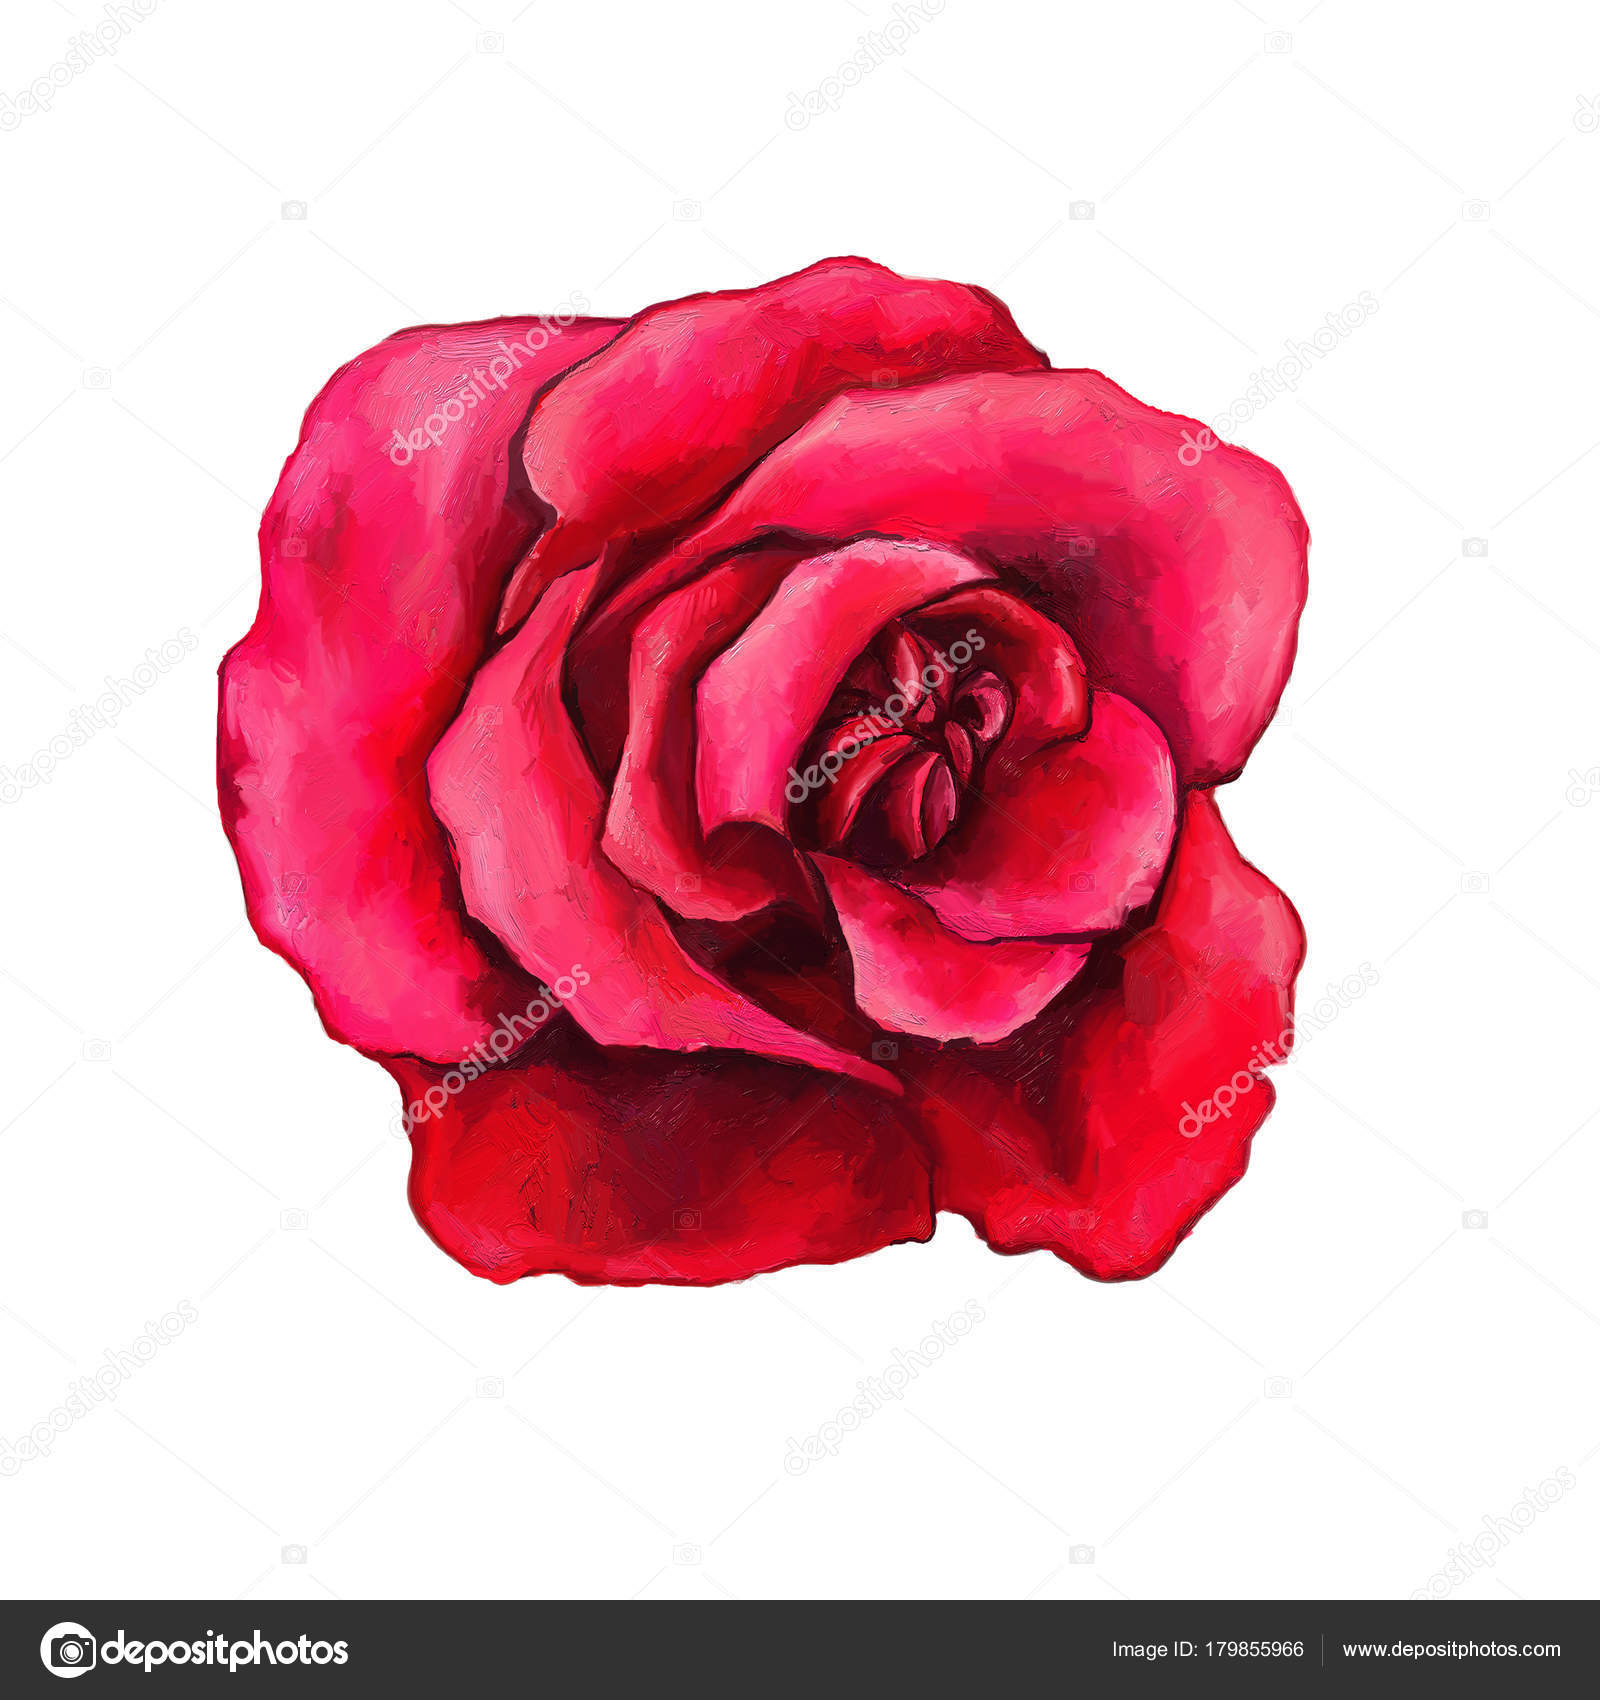 Beautiful red rose isolated white background oil painting style beautiful red rose isolated on a white background oil painting style gentle flower for your design can be used for tattoo photo by kicunei izmirmasajfo Choice Image